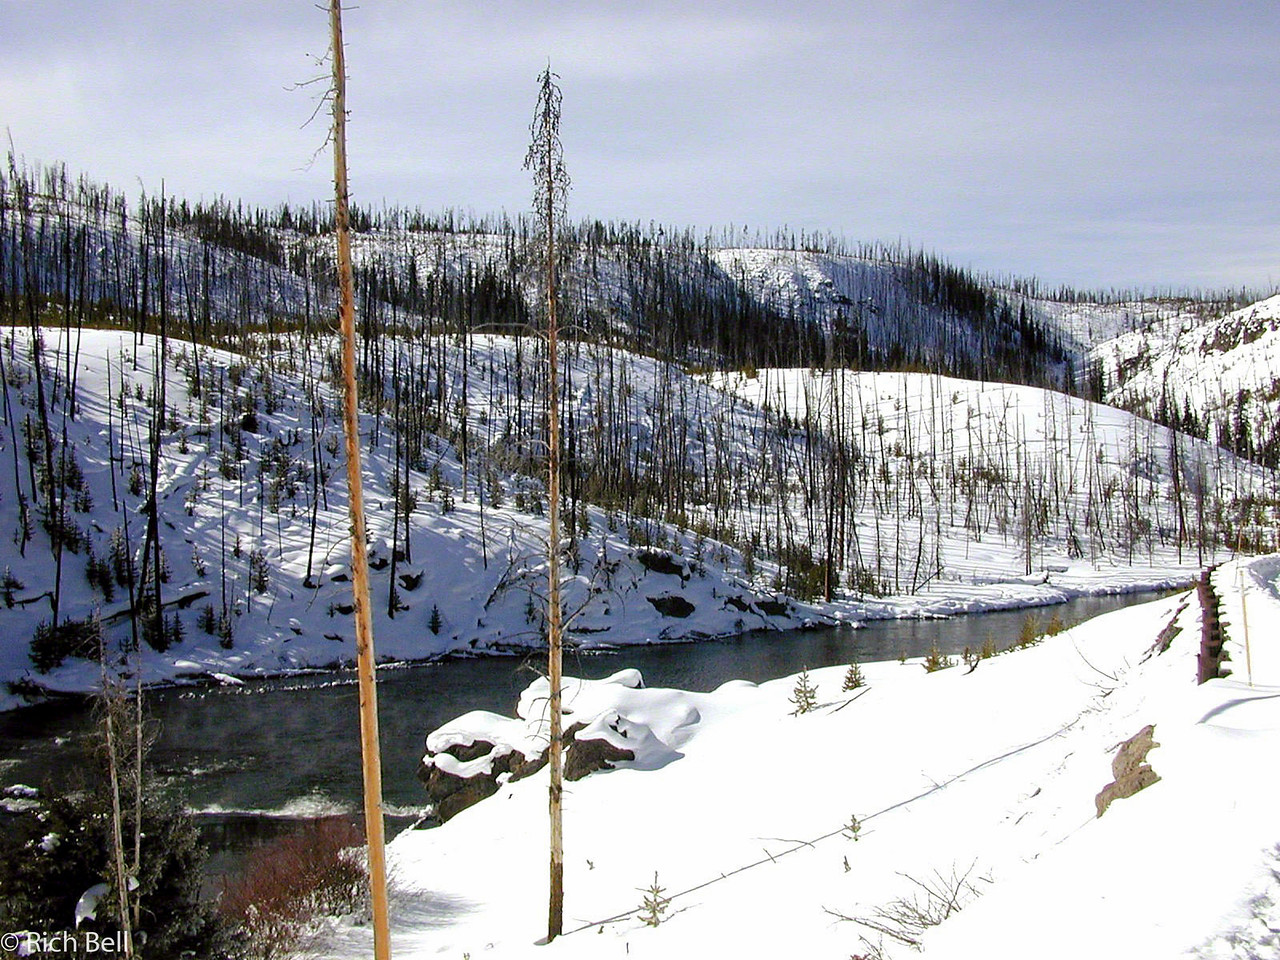 20100721Evidence of 1988 Fire in Yellowstone0037